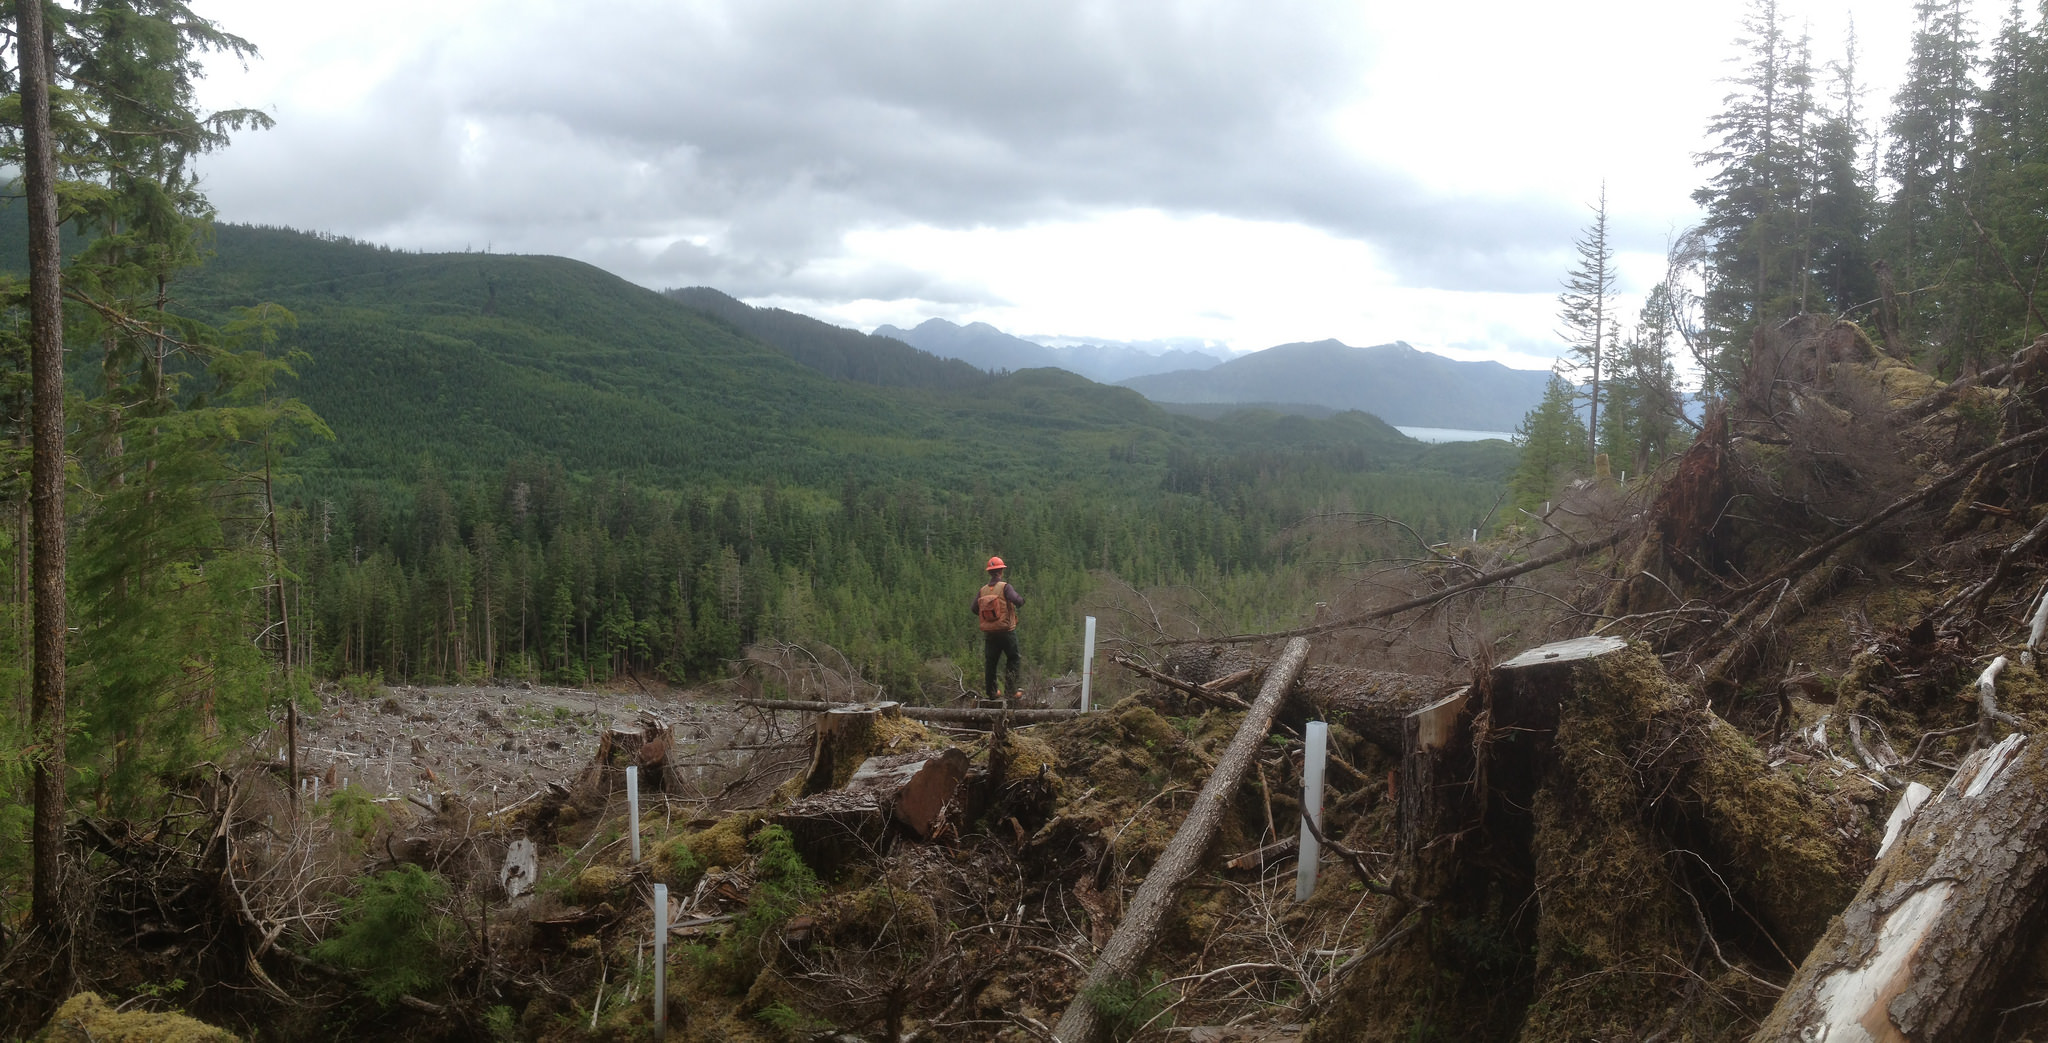 Logging in Haida Gwaii (Photo: Dru via Flickr)